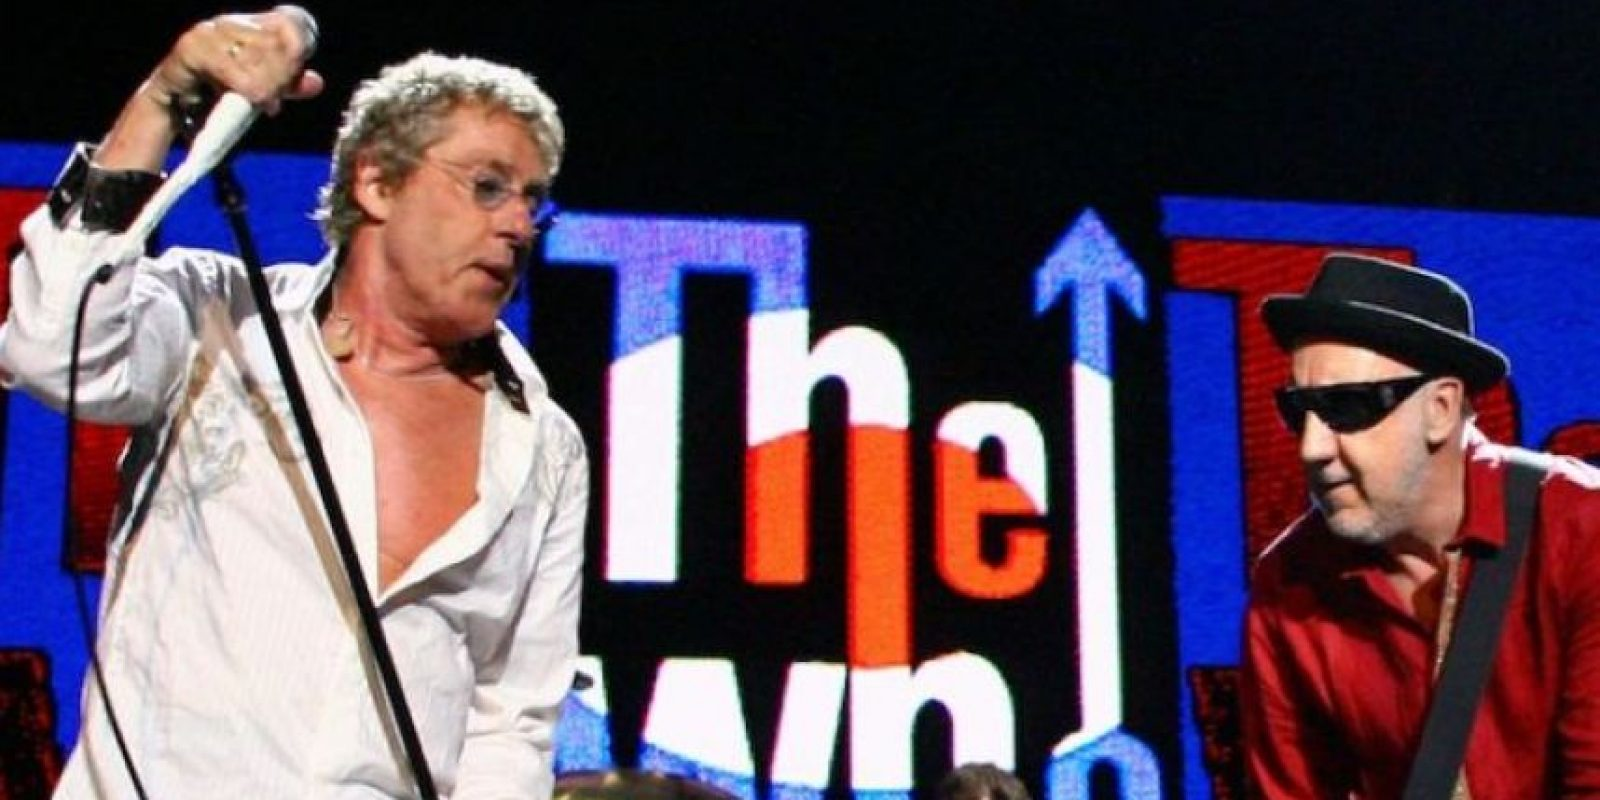 El nombre original de The Who fue The High Numbers Foto: Getty Images